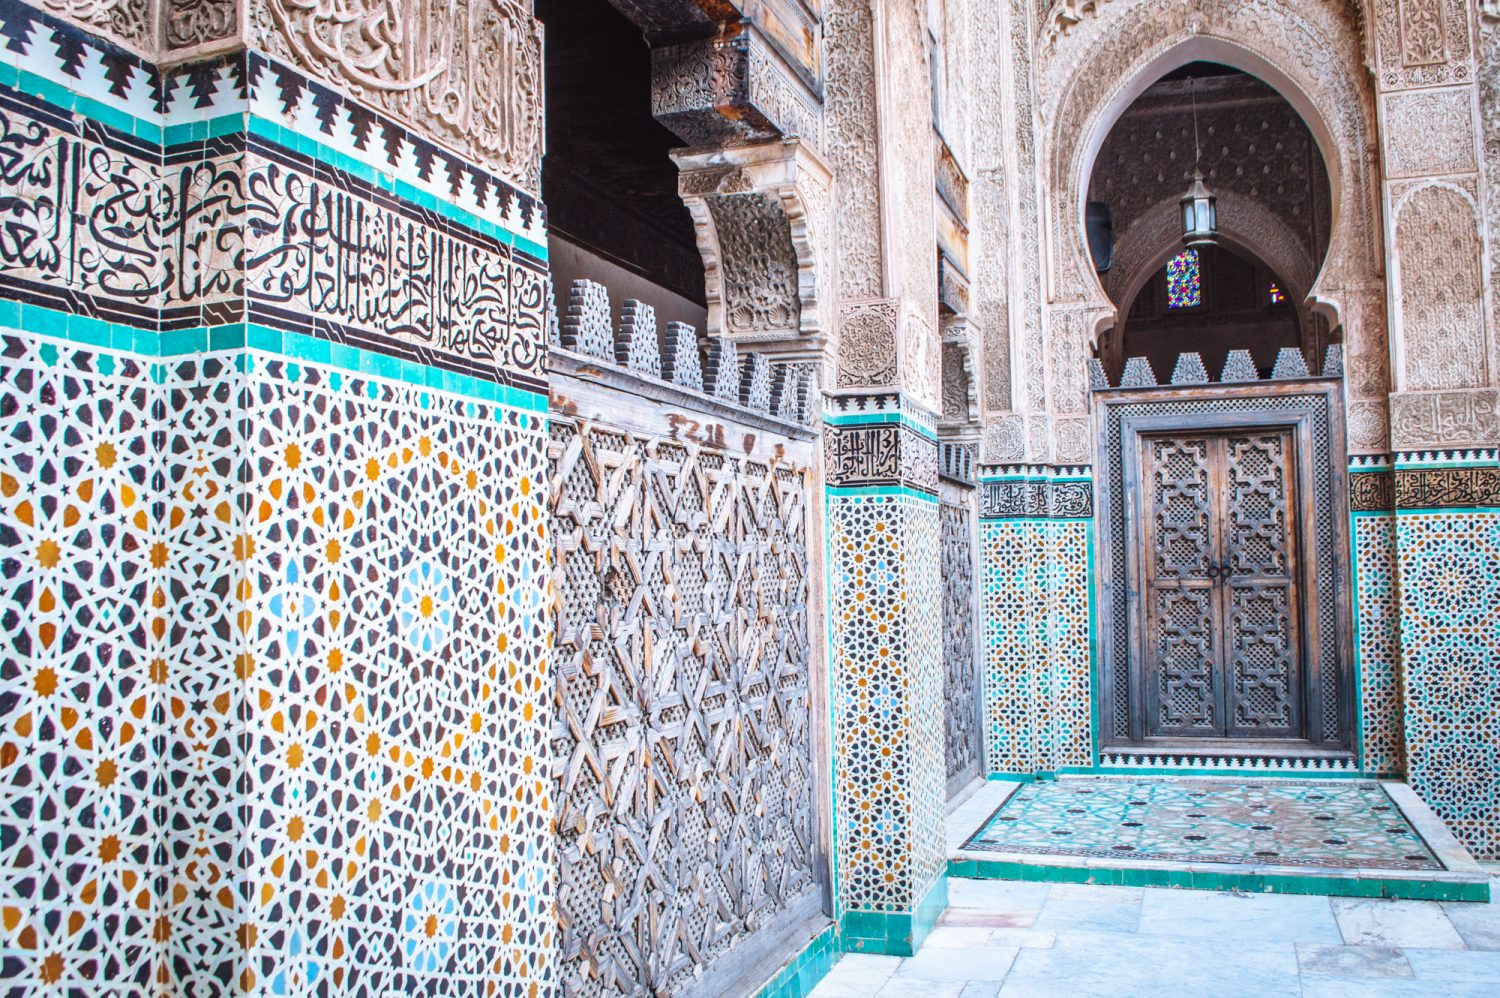 Stunning Morocco pictures that will make you want to book a ticket right away! Morocco travel inspo ft. photos from Marrakech, Fes/Fez, Chefchaouen, Essaouira and more. #Travel #MorcoccoTravel #Fez #Marrakech #Chefchaouen #Essaouira